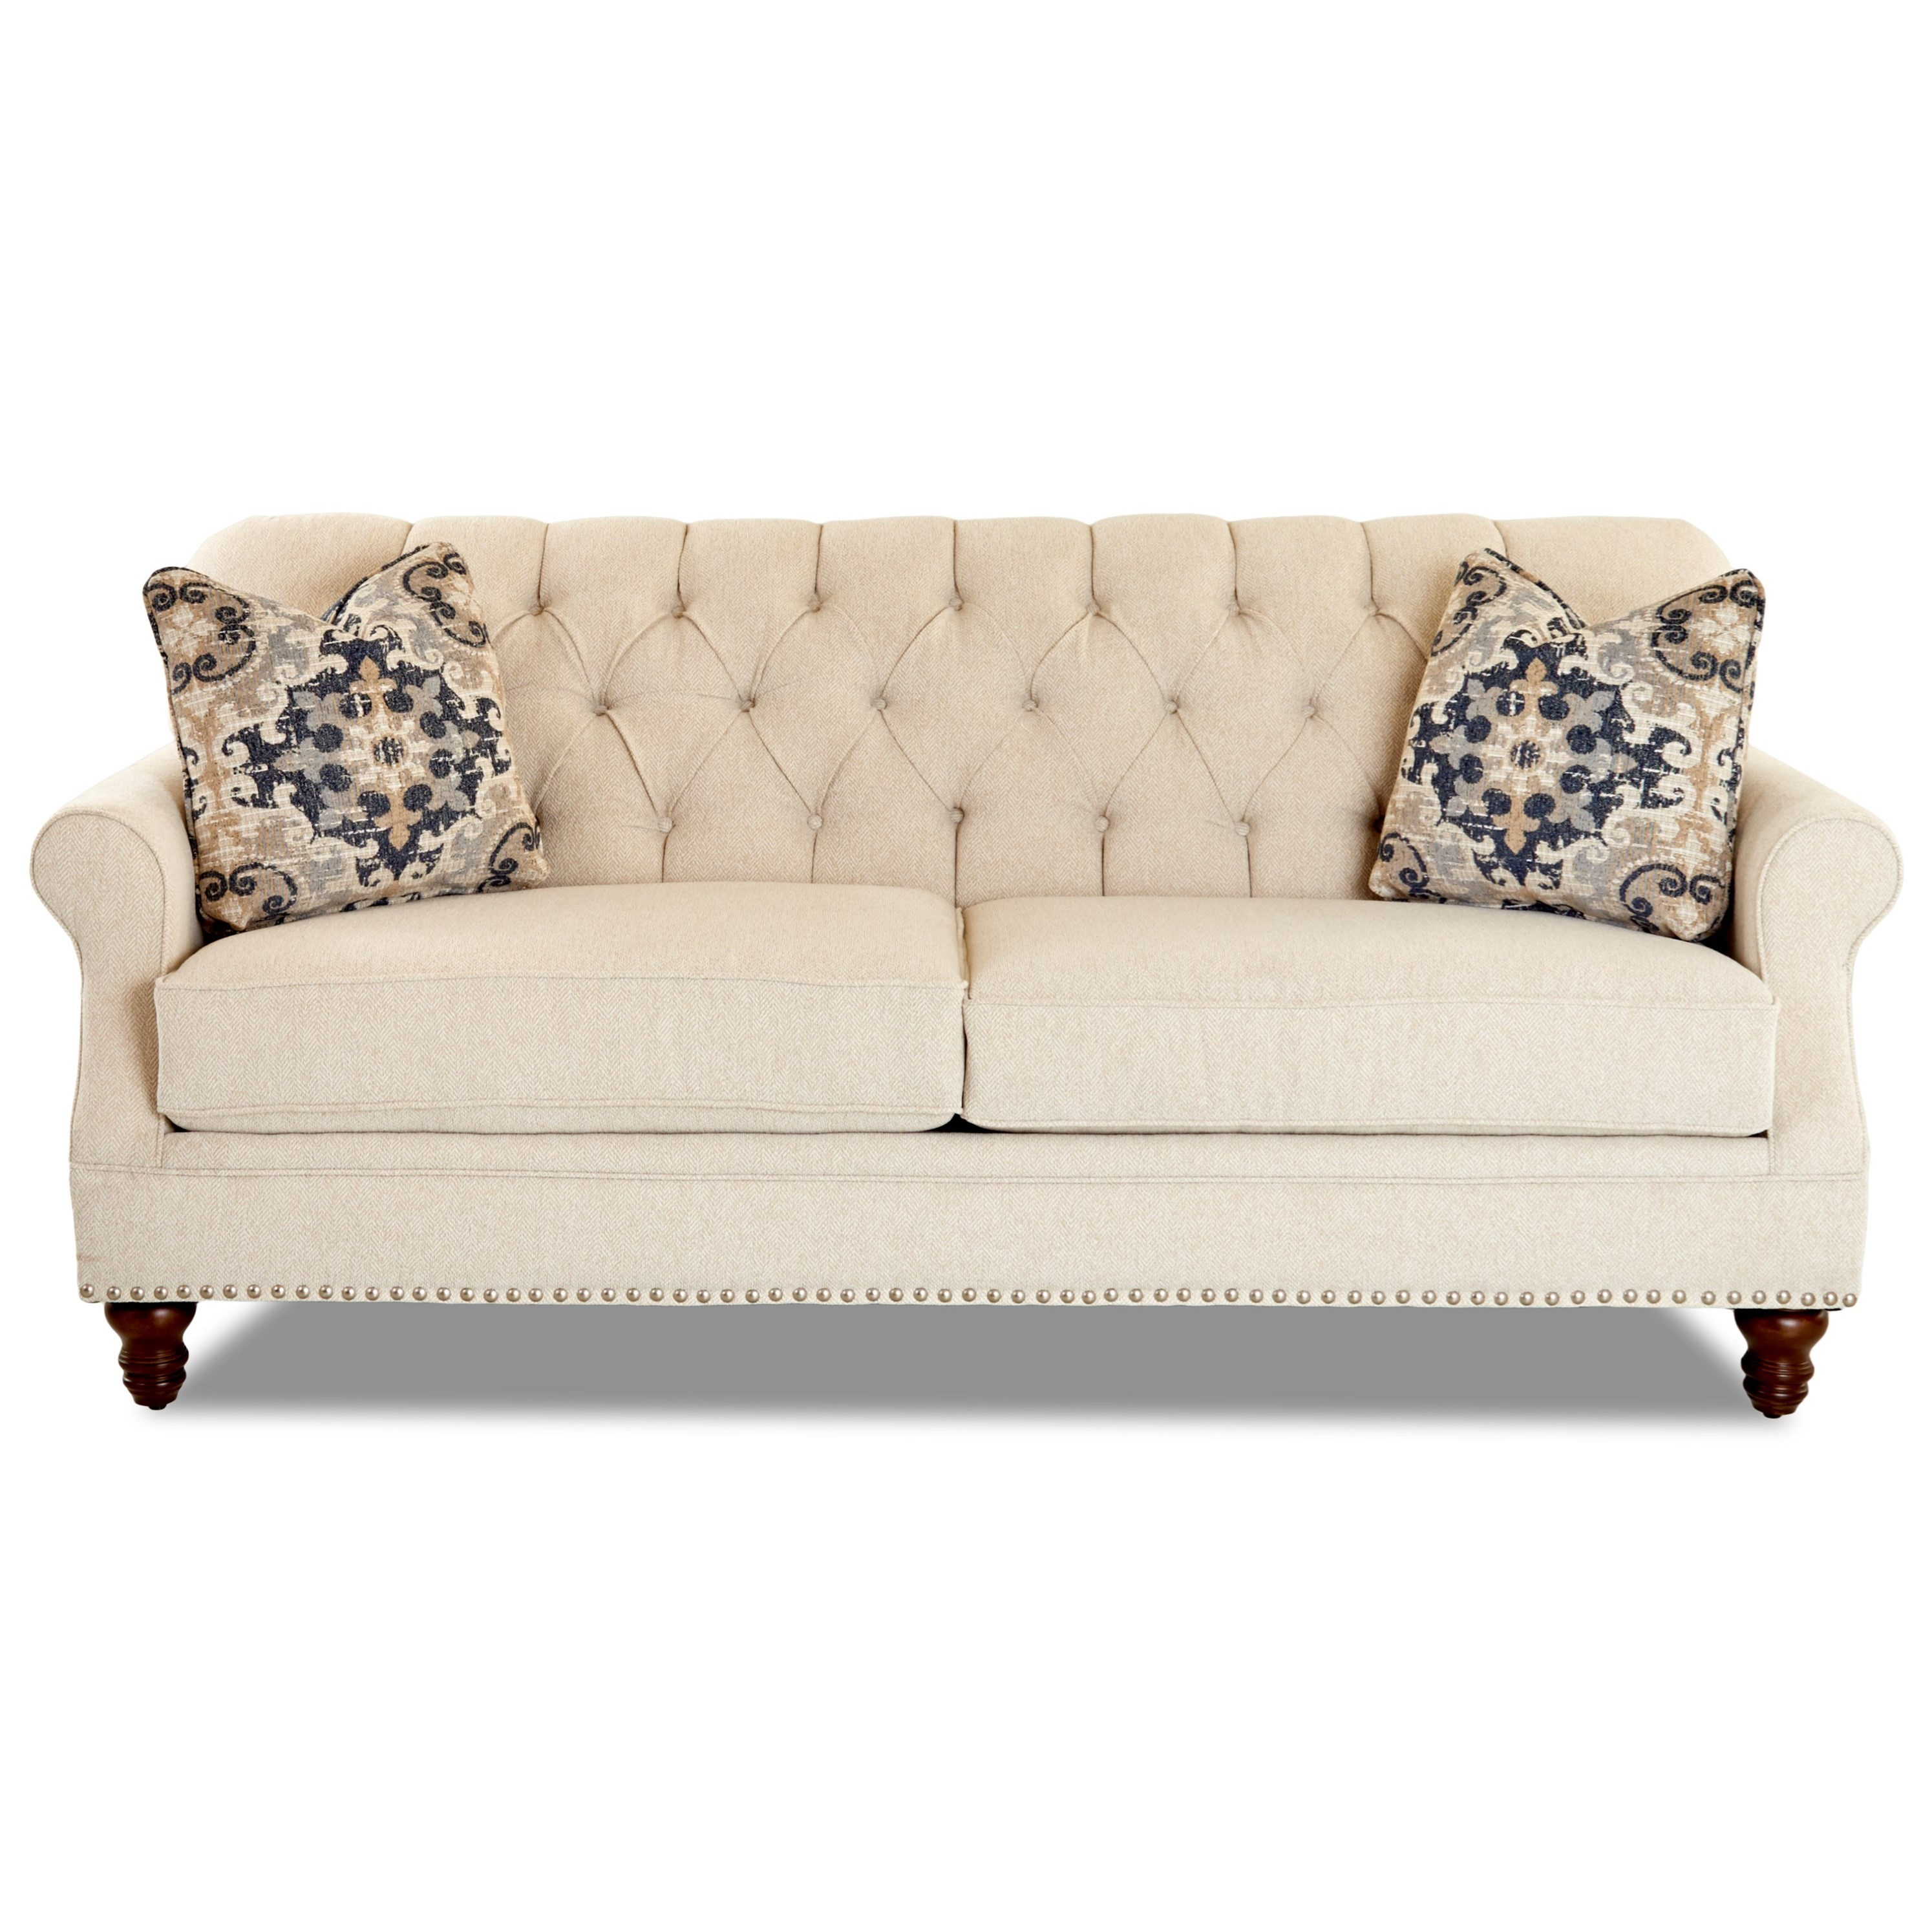 Burbank Sofa w/ Nailheads by Klaussner at Northeast Factory Direct